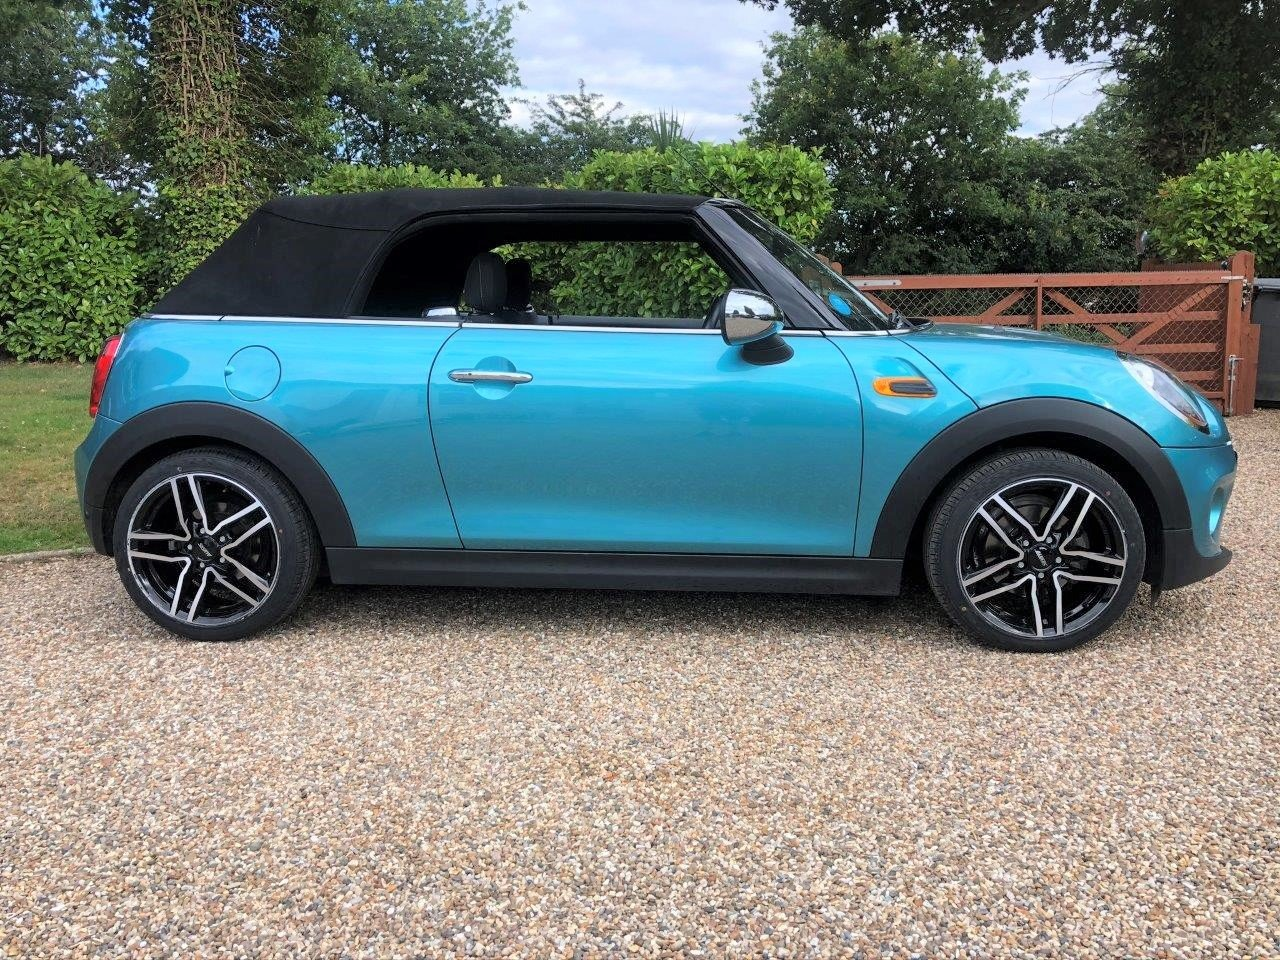 2018 MINI Cooper Convertible 1.5i Turbo 134bhp 6-Speed Manual SOLD (picture 3 of 6)